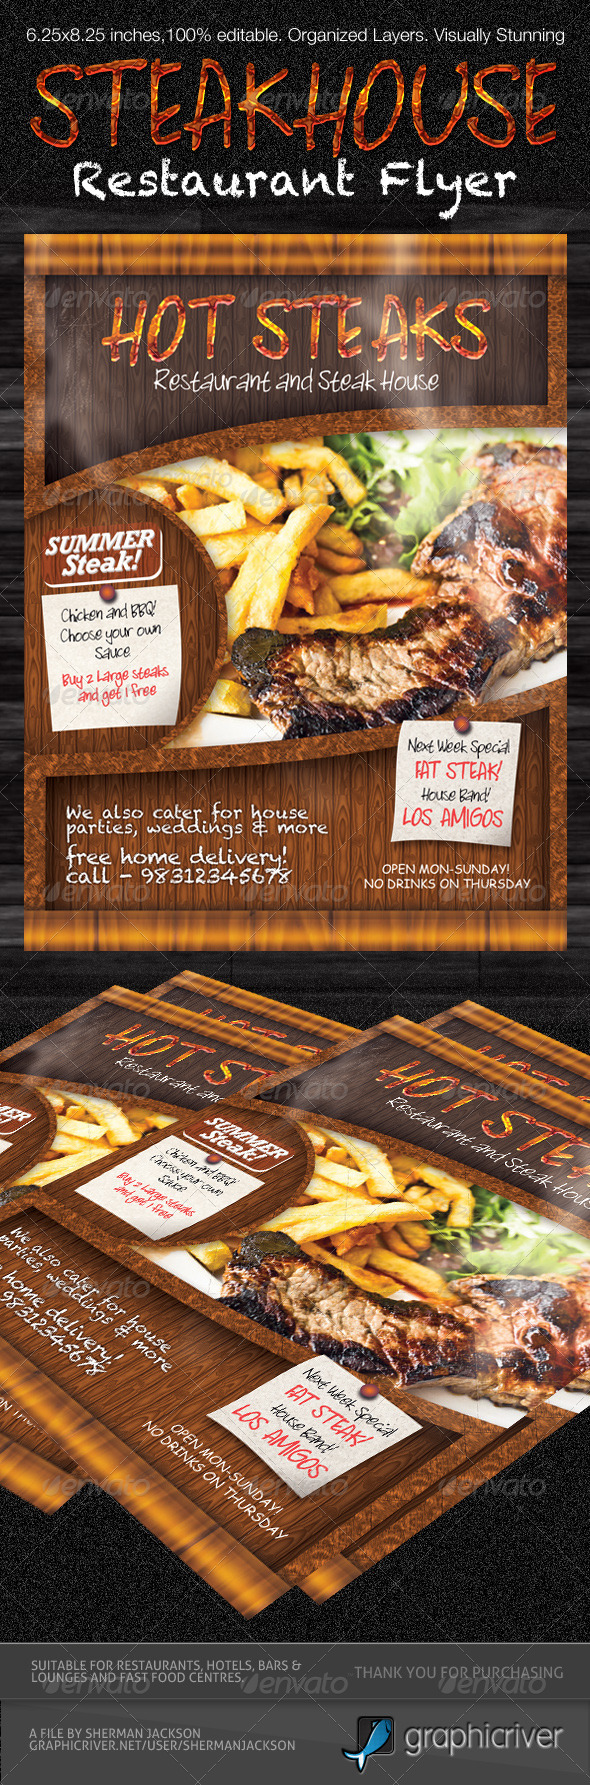 Restaurant Steak House Flyer PSD Template - Restaurant Flyers